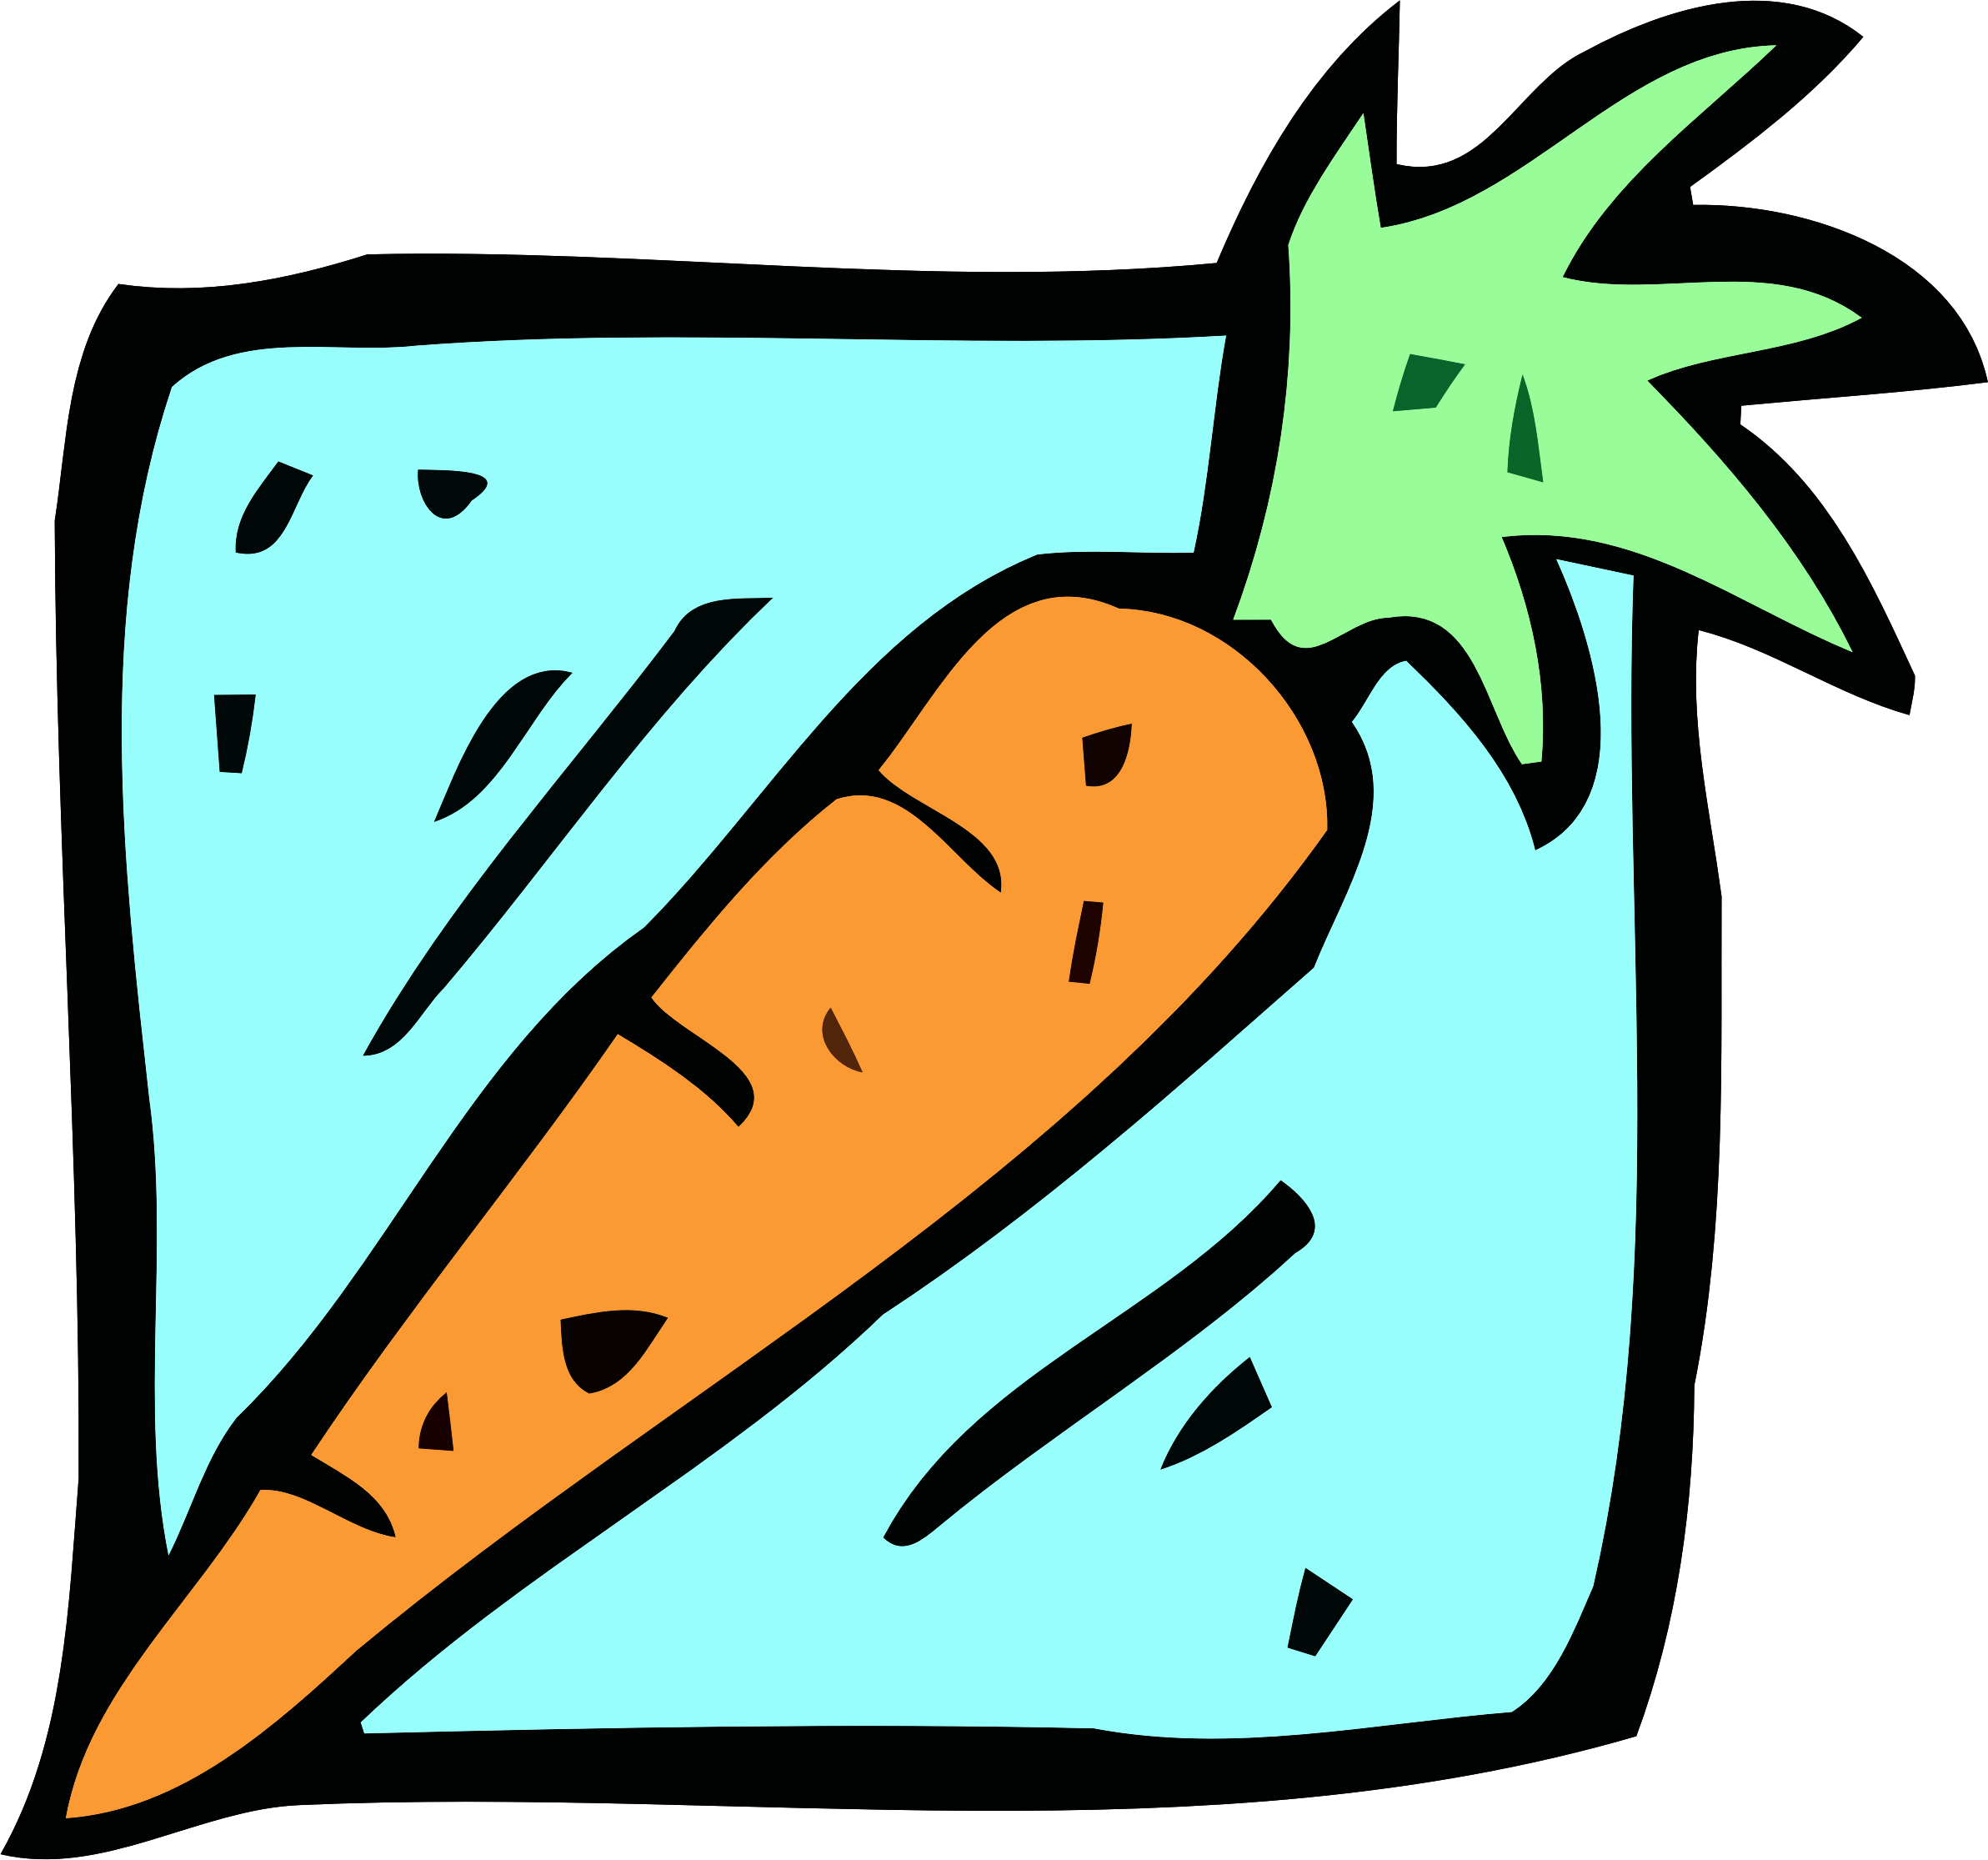 Food and drink icon - carrot by Firkin